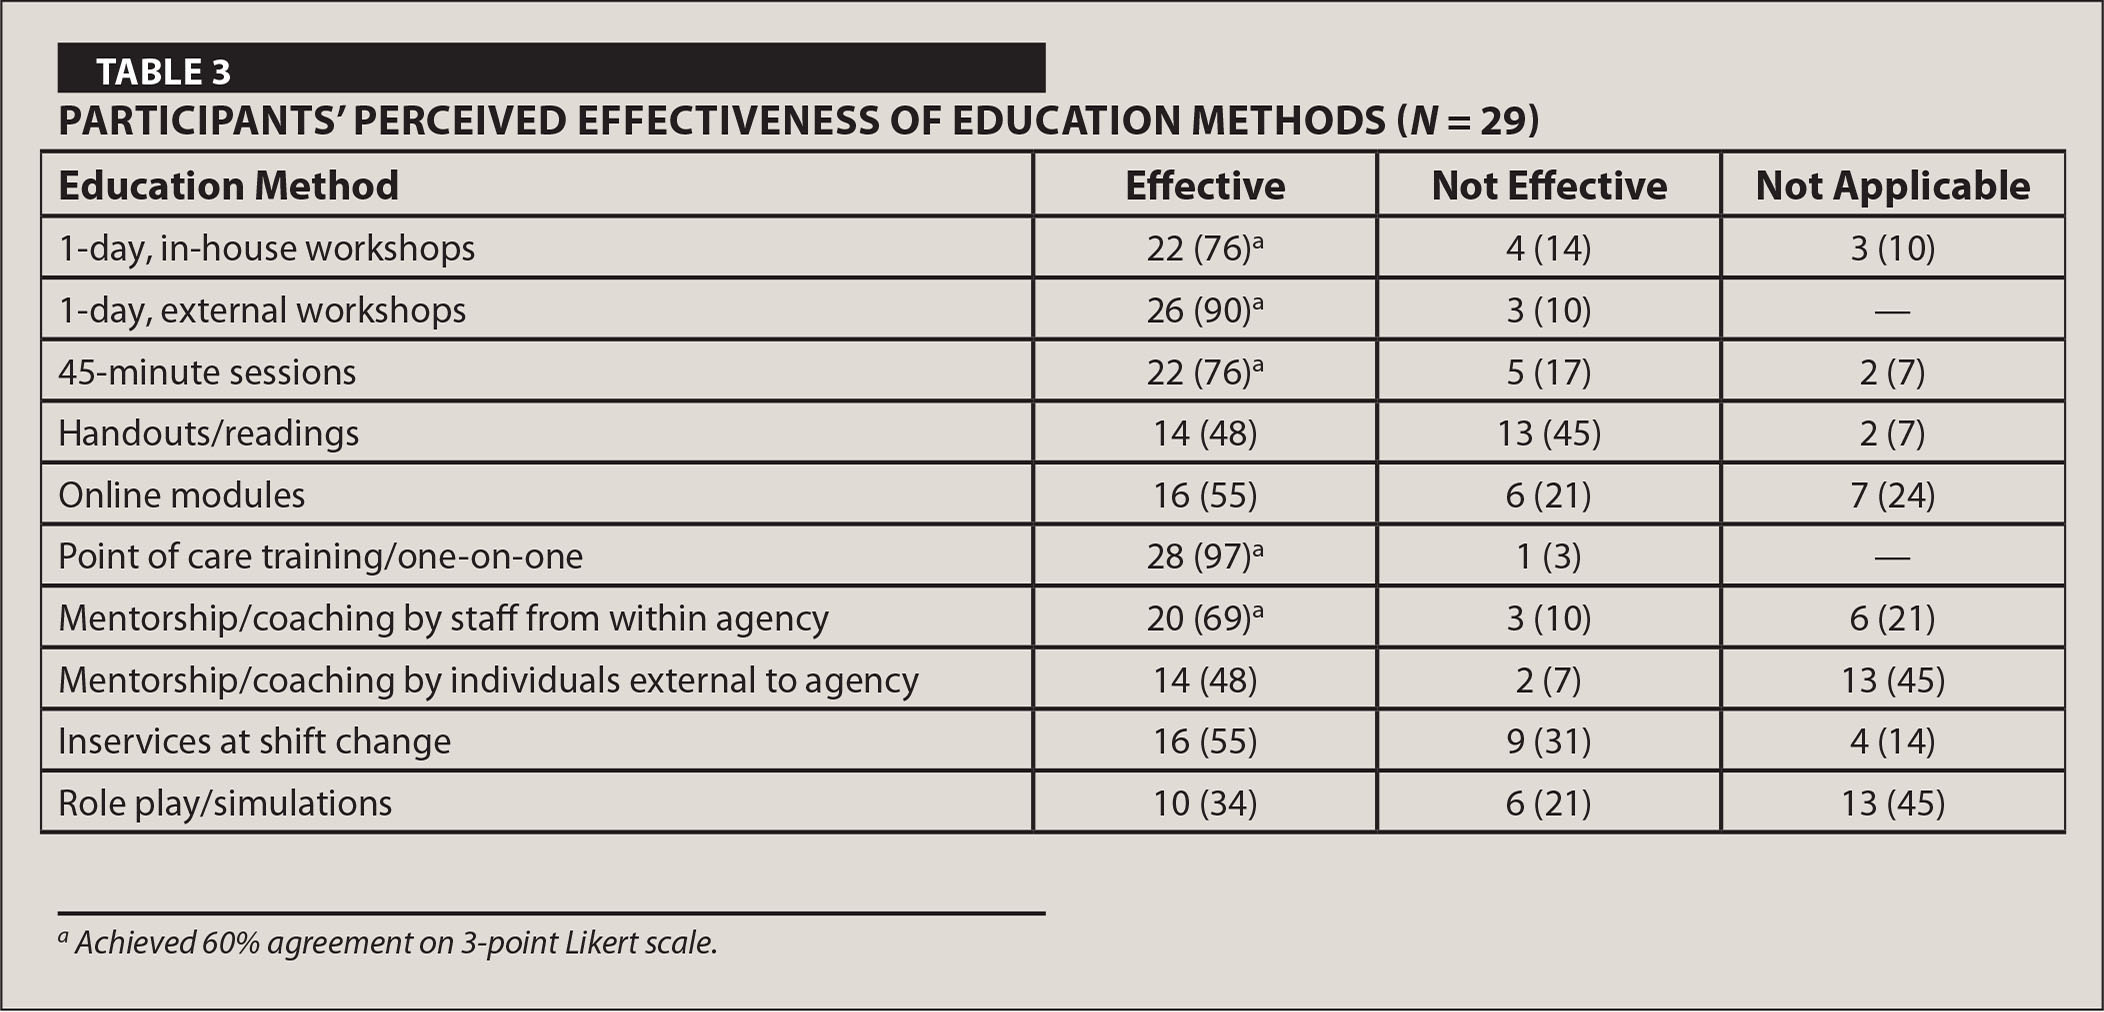 Participants' Perceived Effectiveness of Education Methods (N = 29)